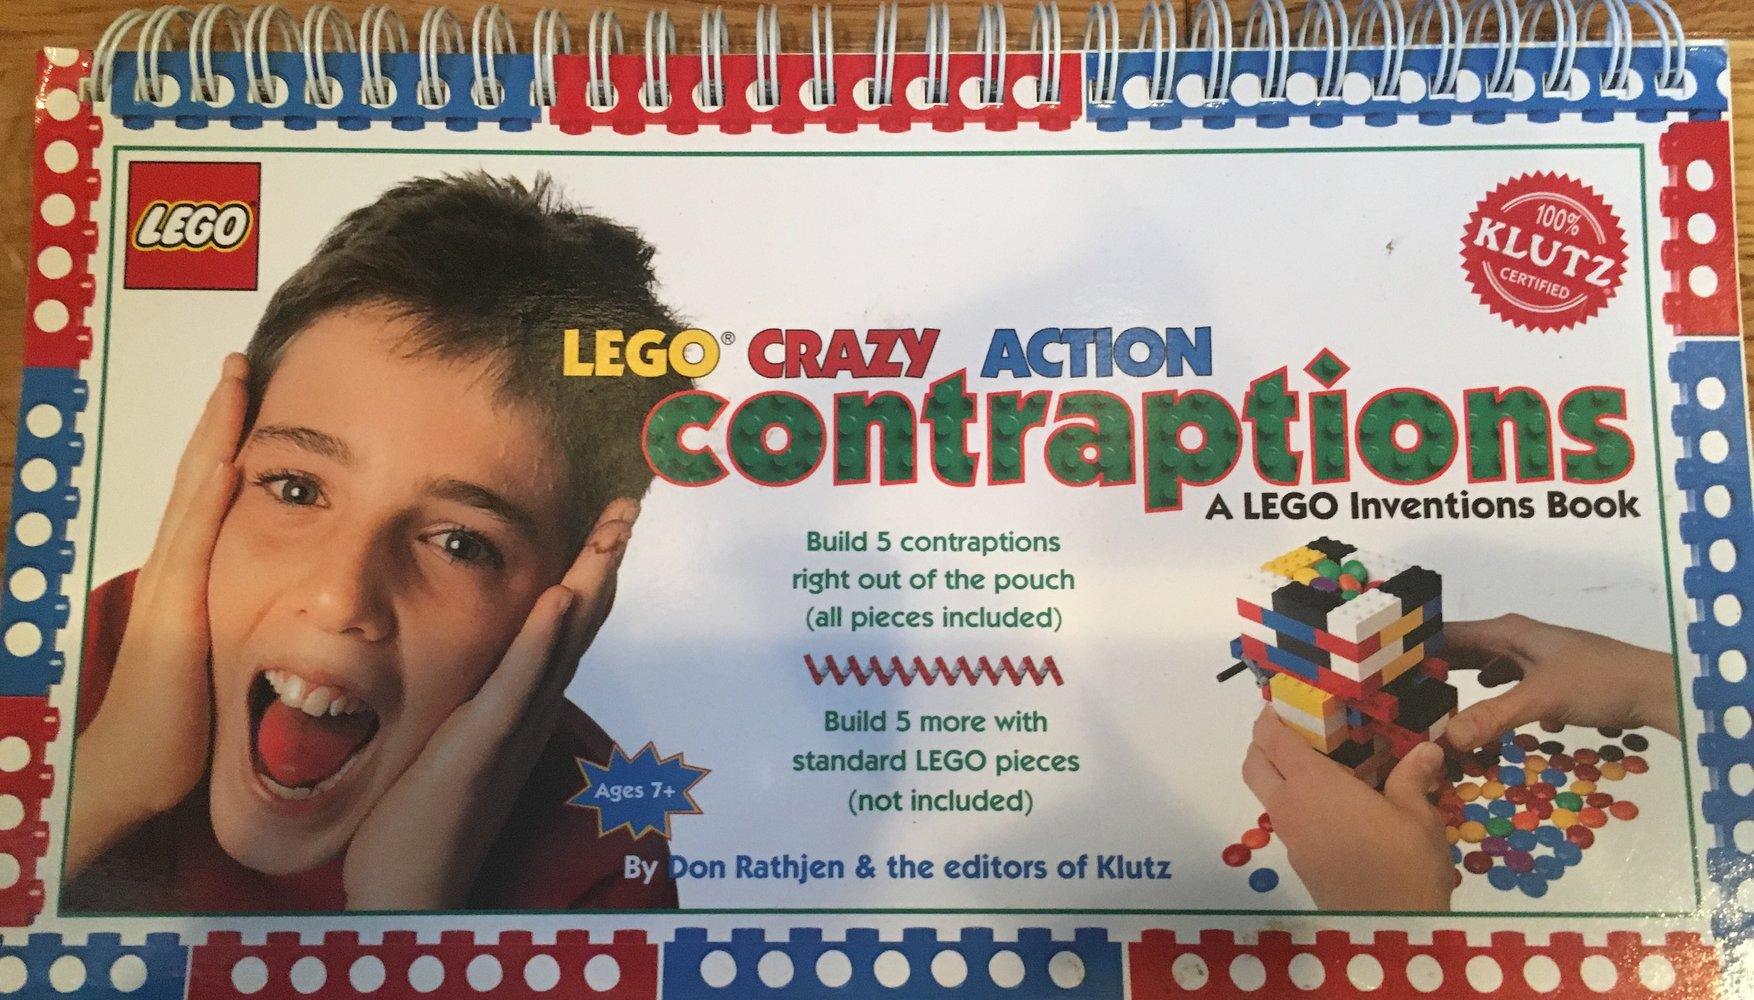 Crazy Action Contraptions: A LEGO Inventions Book